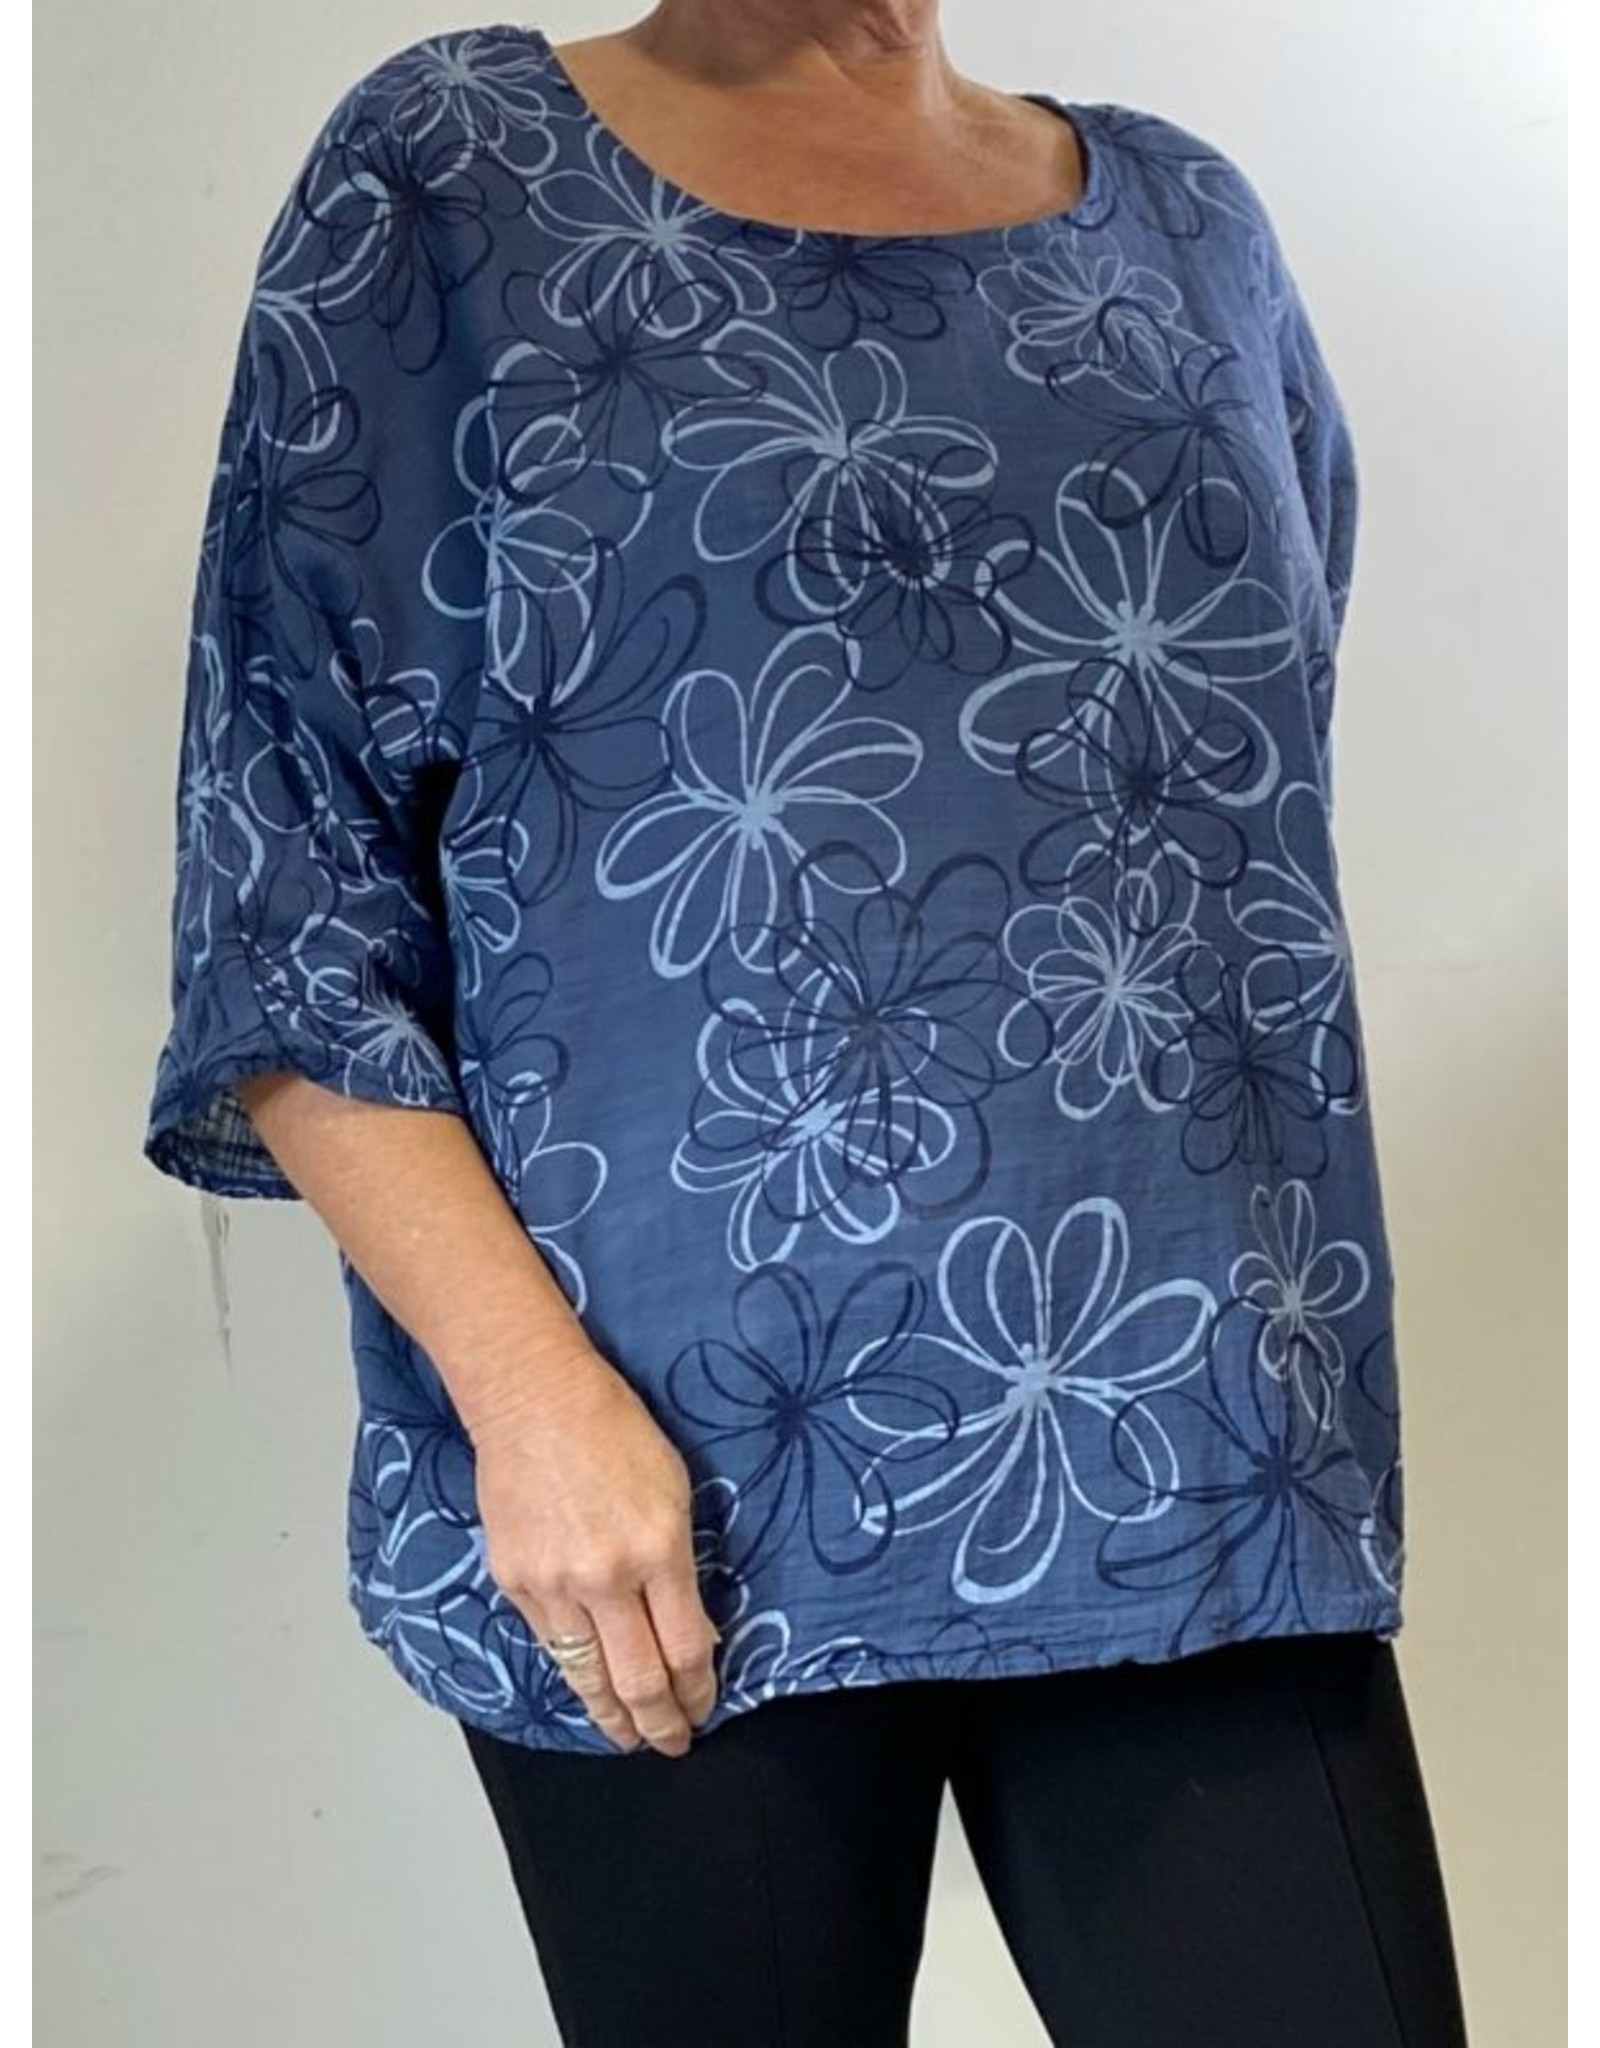 PLUM LOCO 6679 FLOWER PRINT TOP